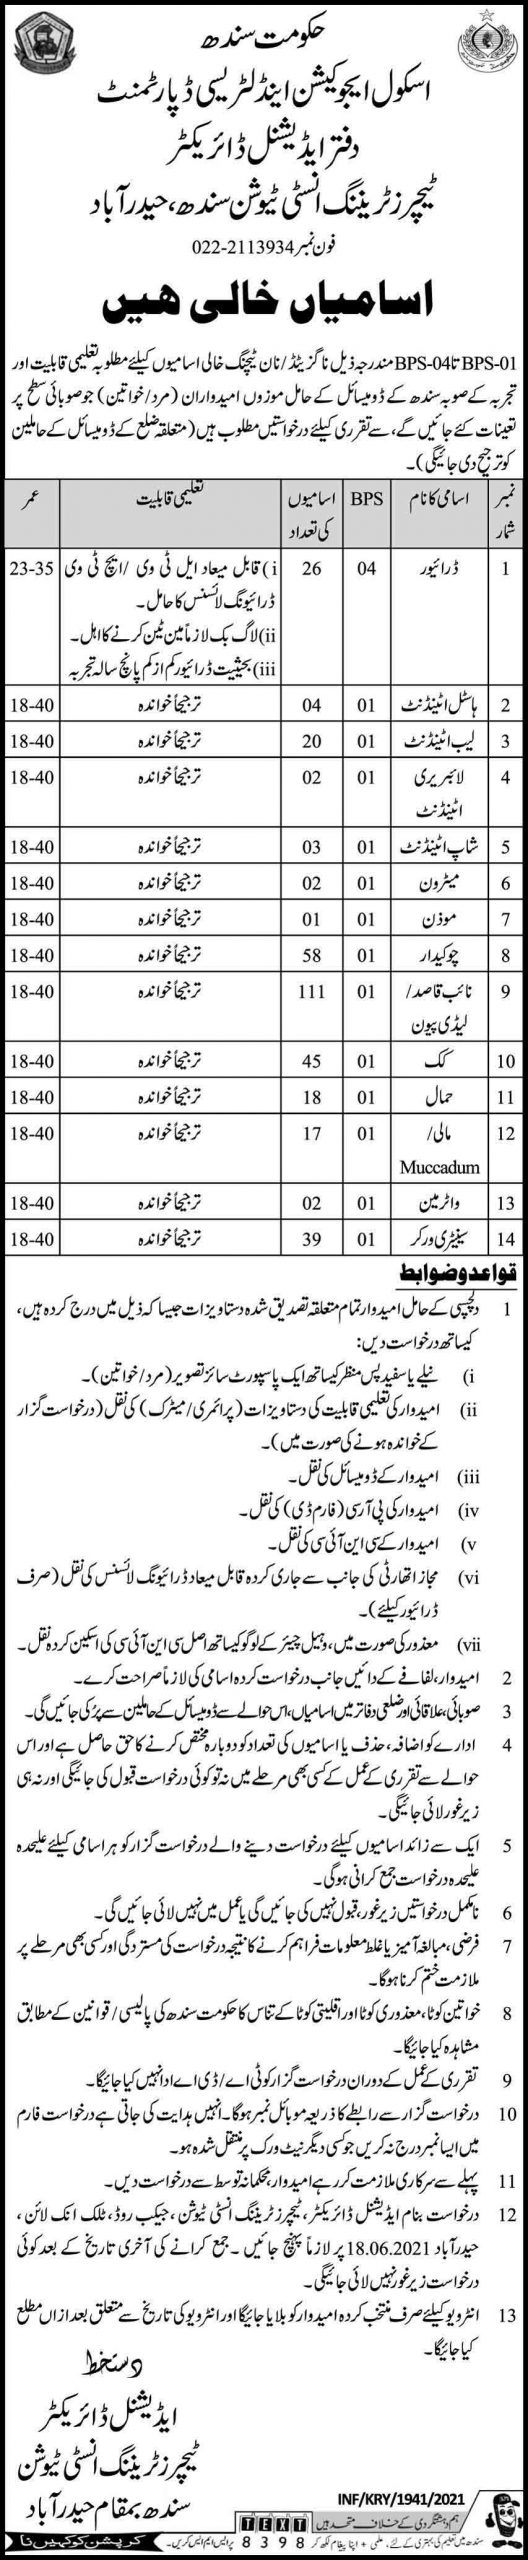 Jobs in Sindh School Education & Literacy Department May 2021 (348 Posts)